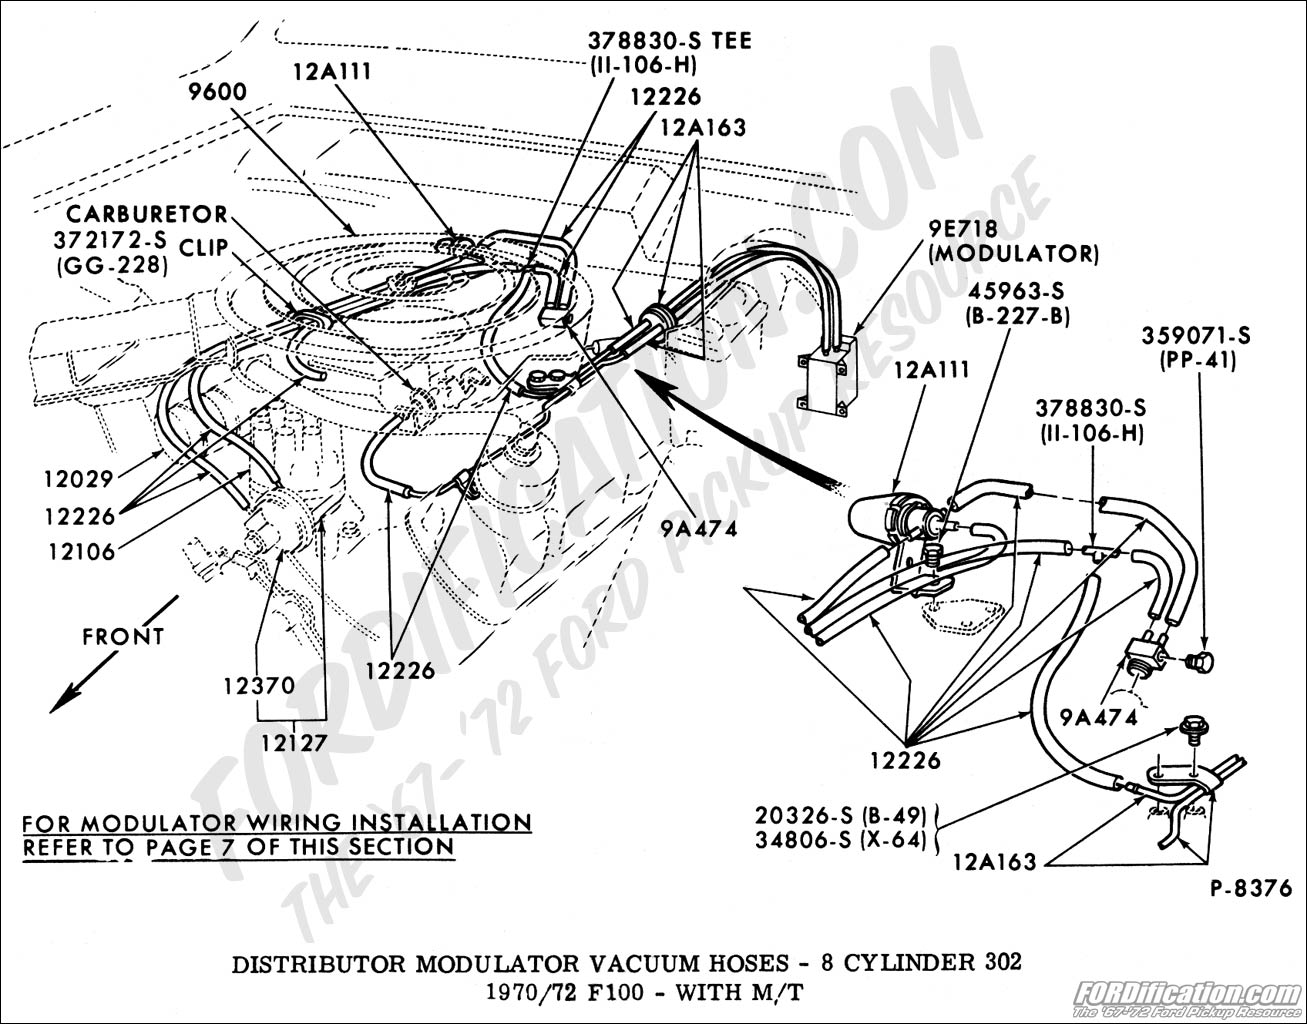 ford truck technical drawings and schematics section i rh fordification com 2007 Ford F-250 Wiring Diagram 1972 ford f250 wiring diagram